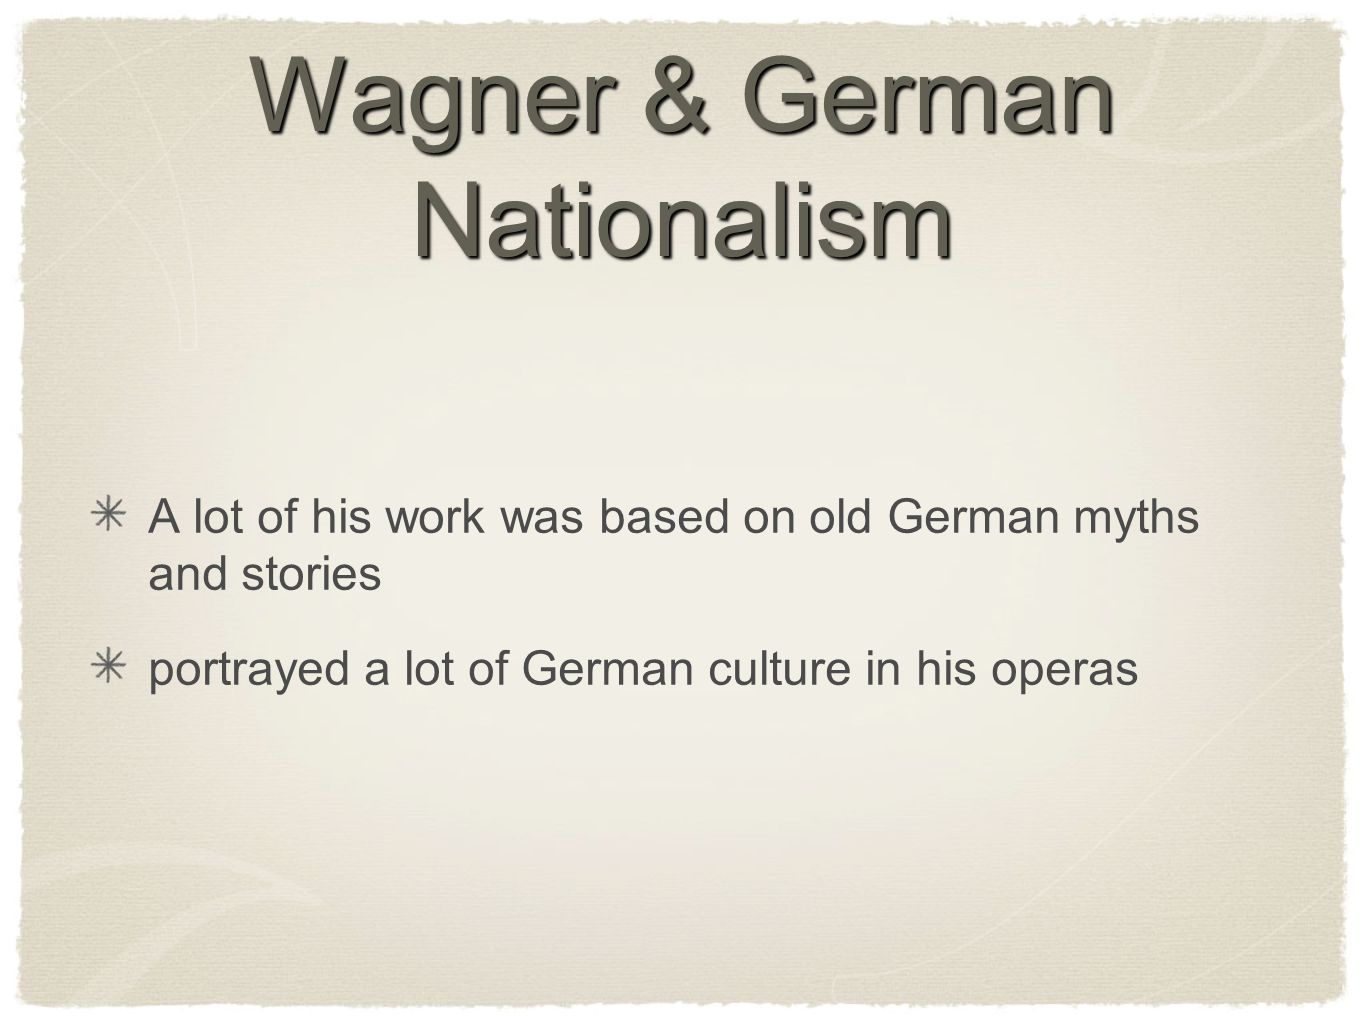 Wagner & German Nationalism A lot of his work was based on old German myths and stories portrayed a lot of German culture in his operas